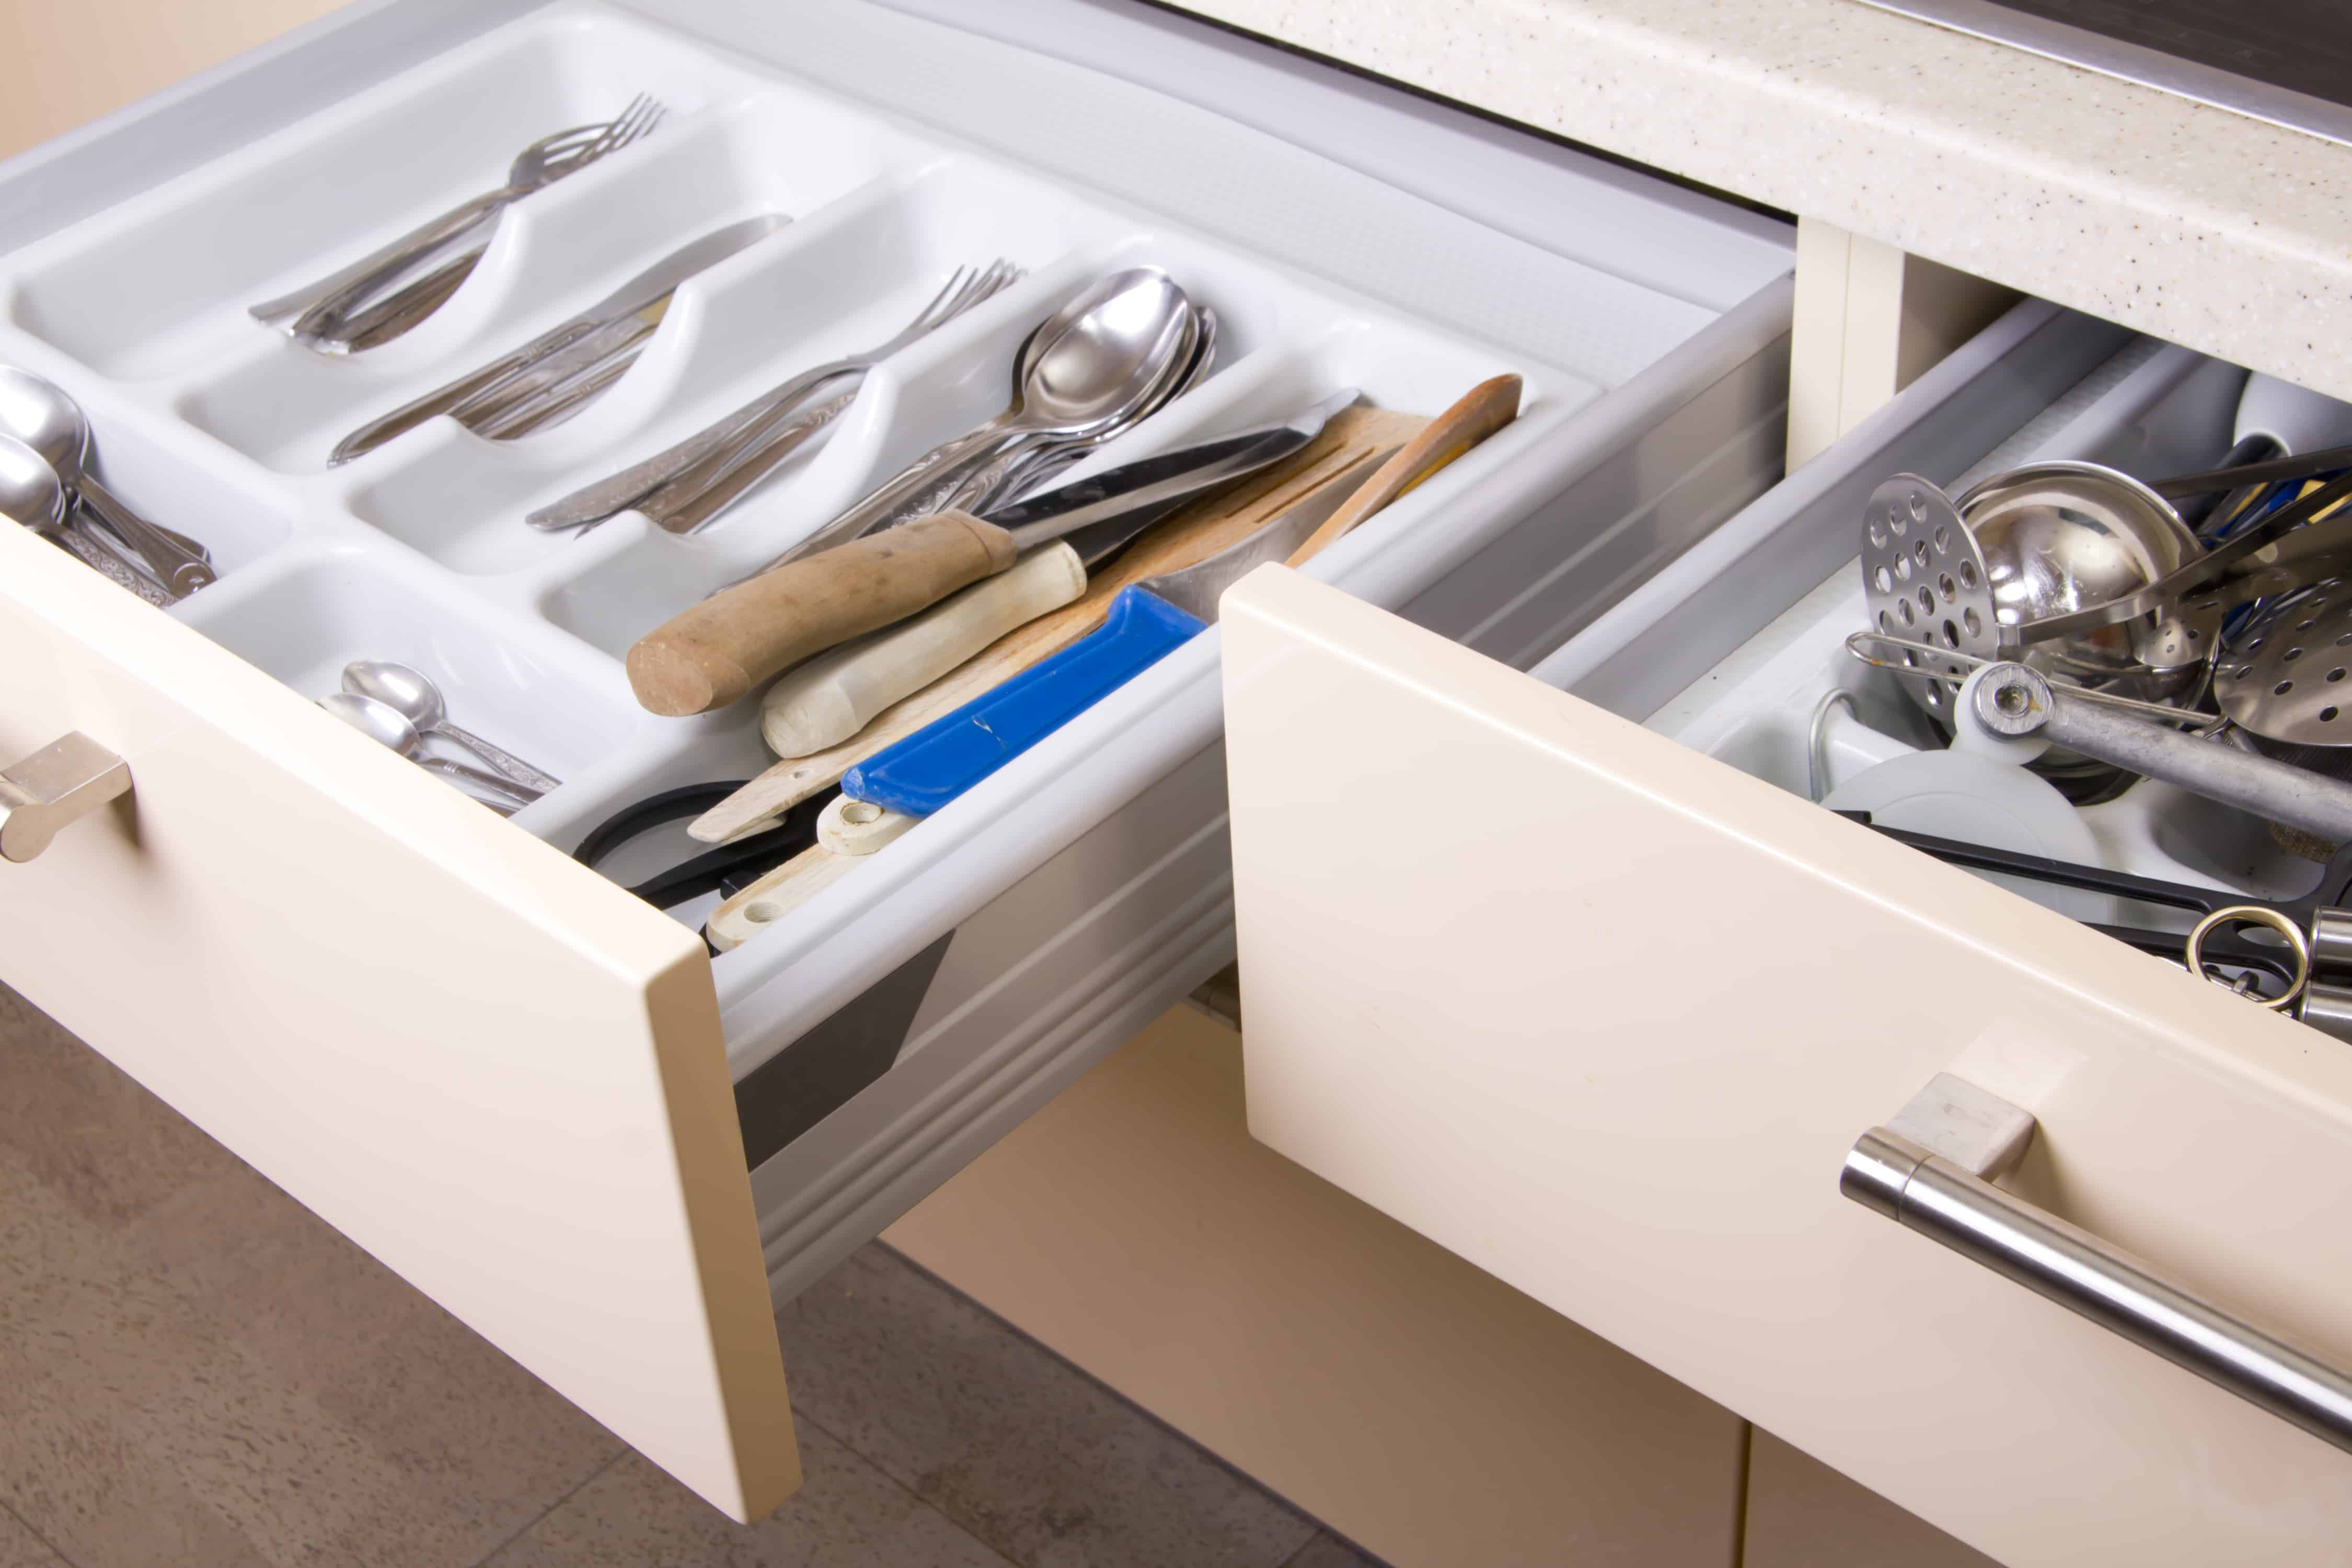 Utensil drawer youre forgetting to clean